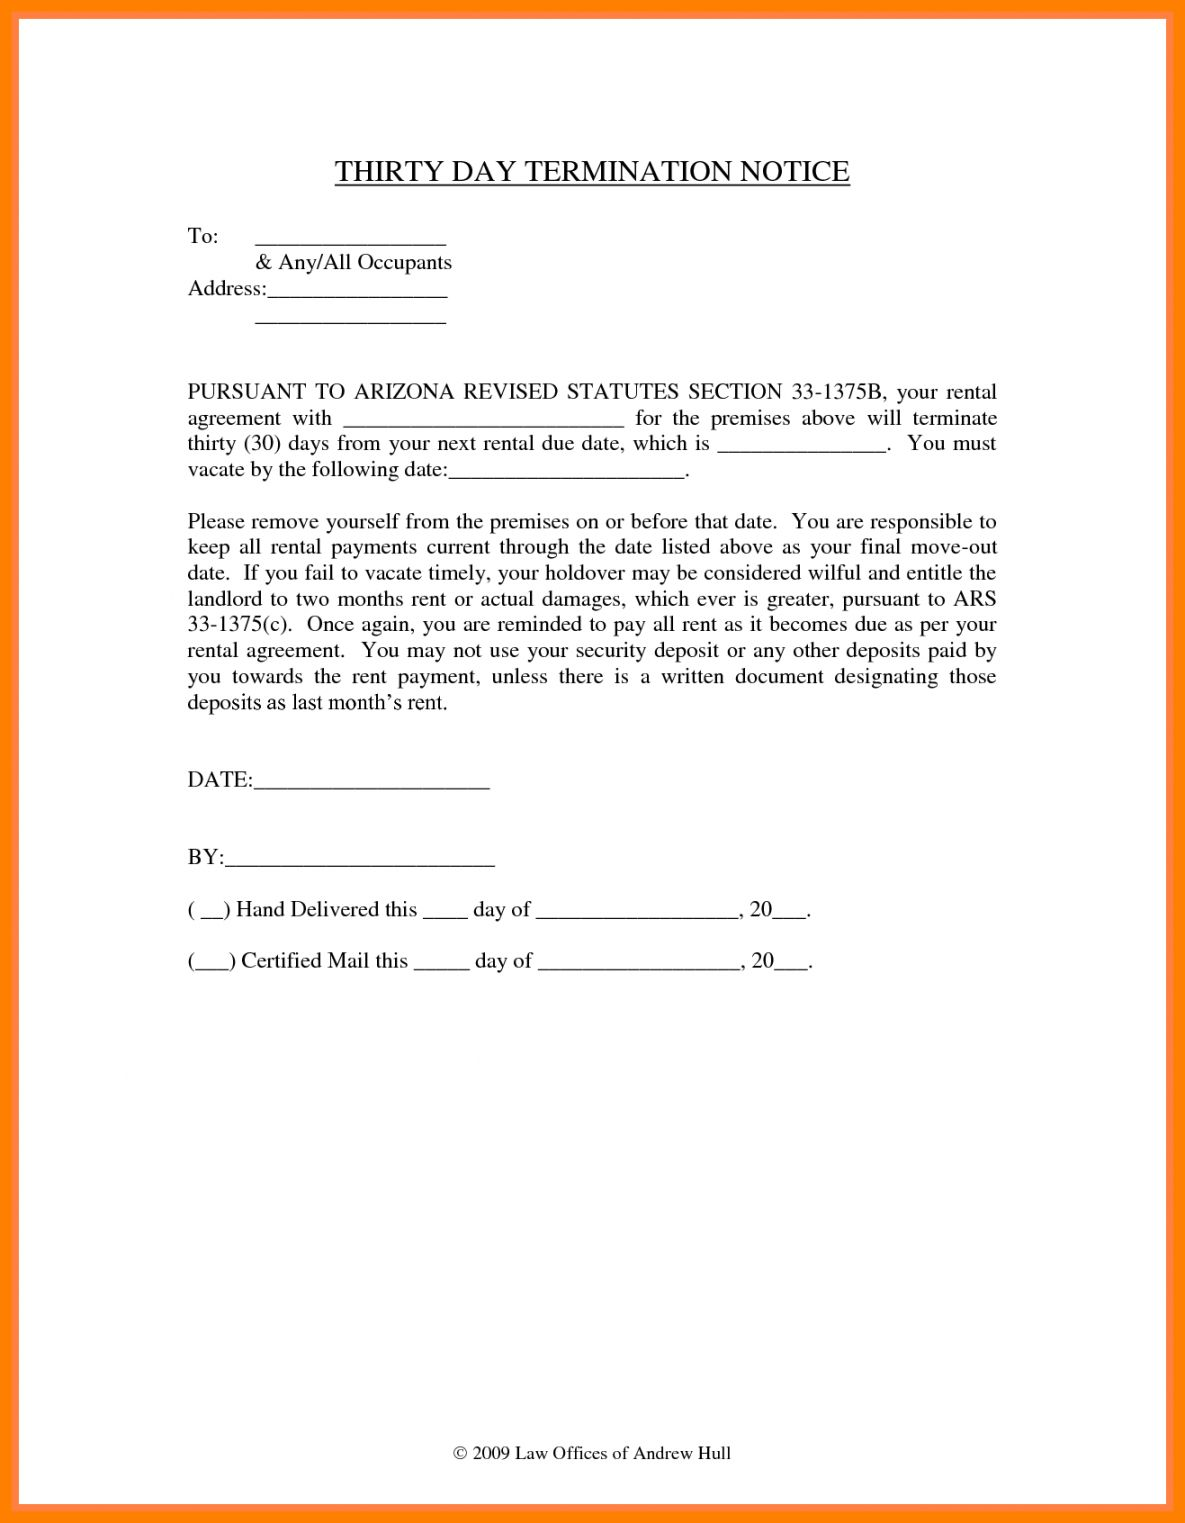 17 Outstanding 30 Day Notice Template California Templates Survey Template List Of Careers